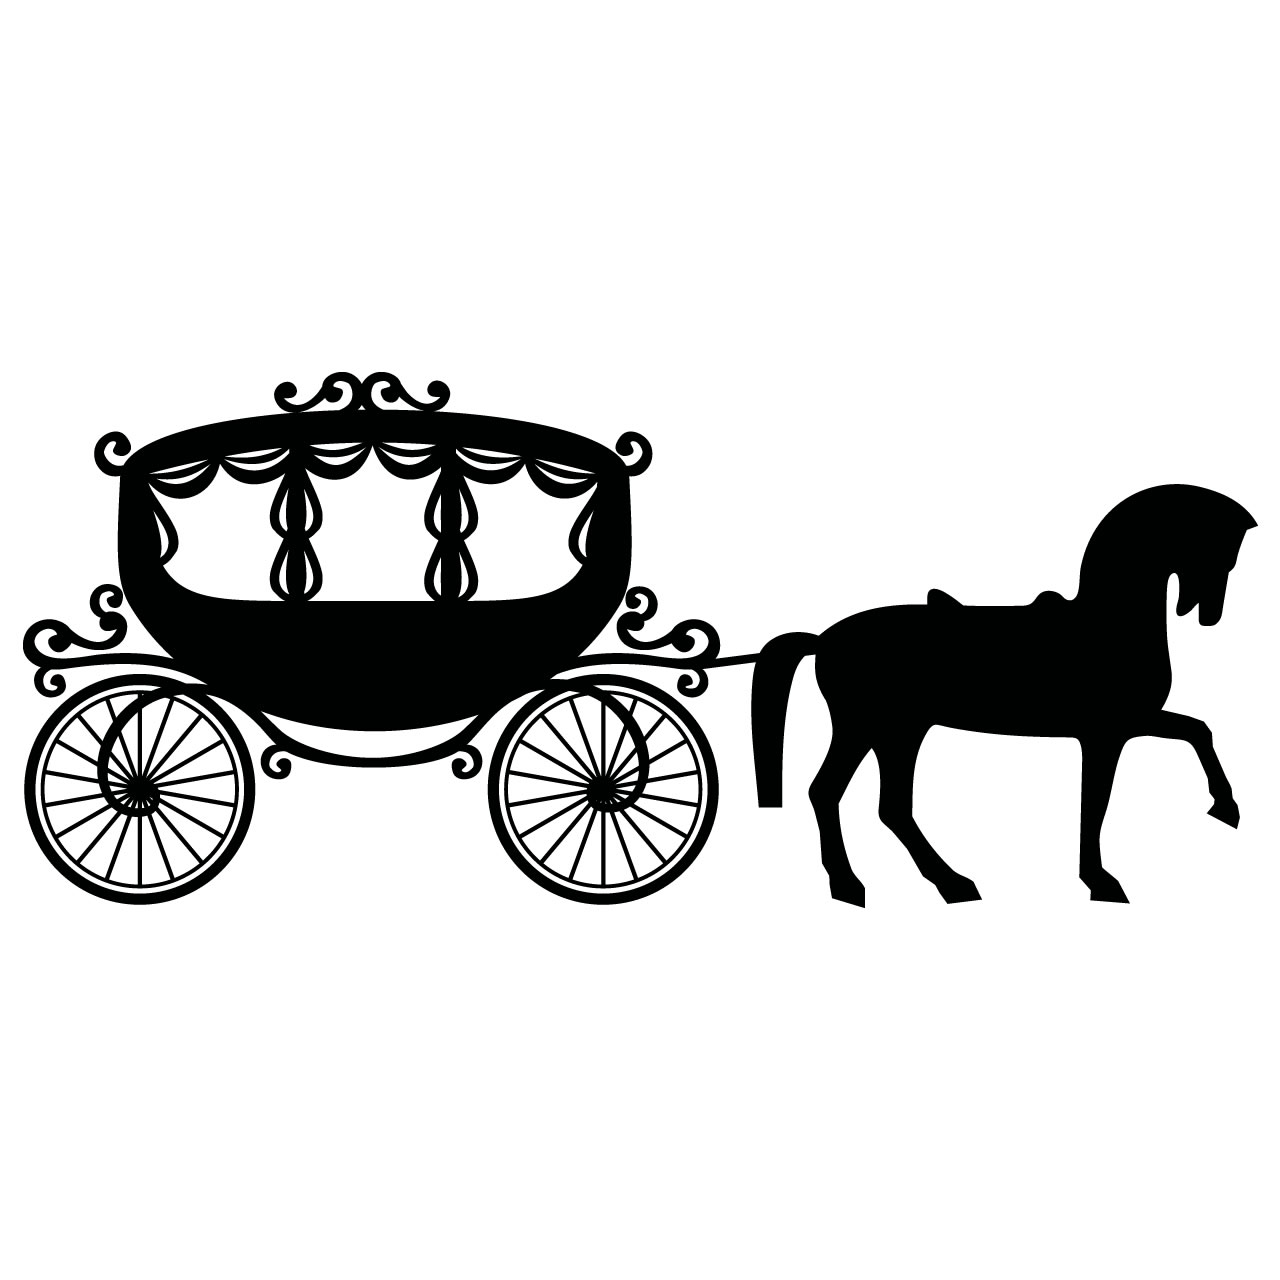 Horse drawn carriage clipart.